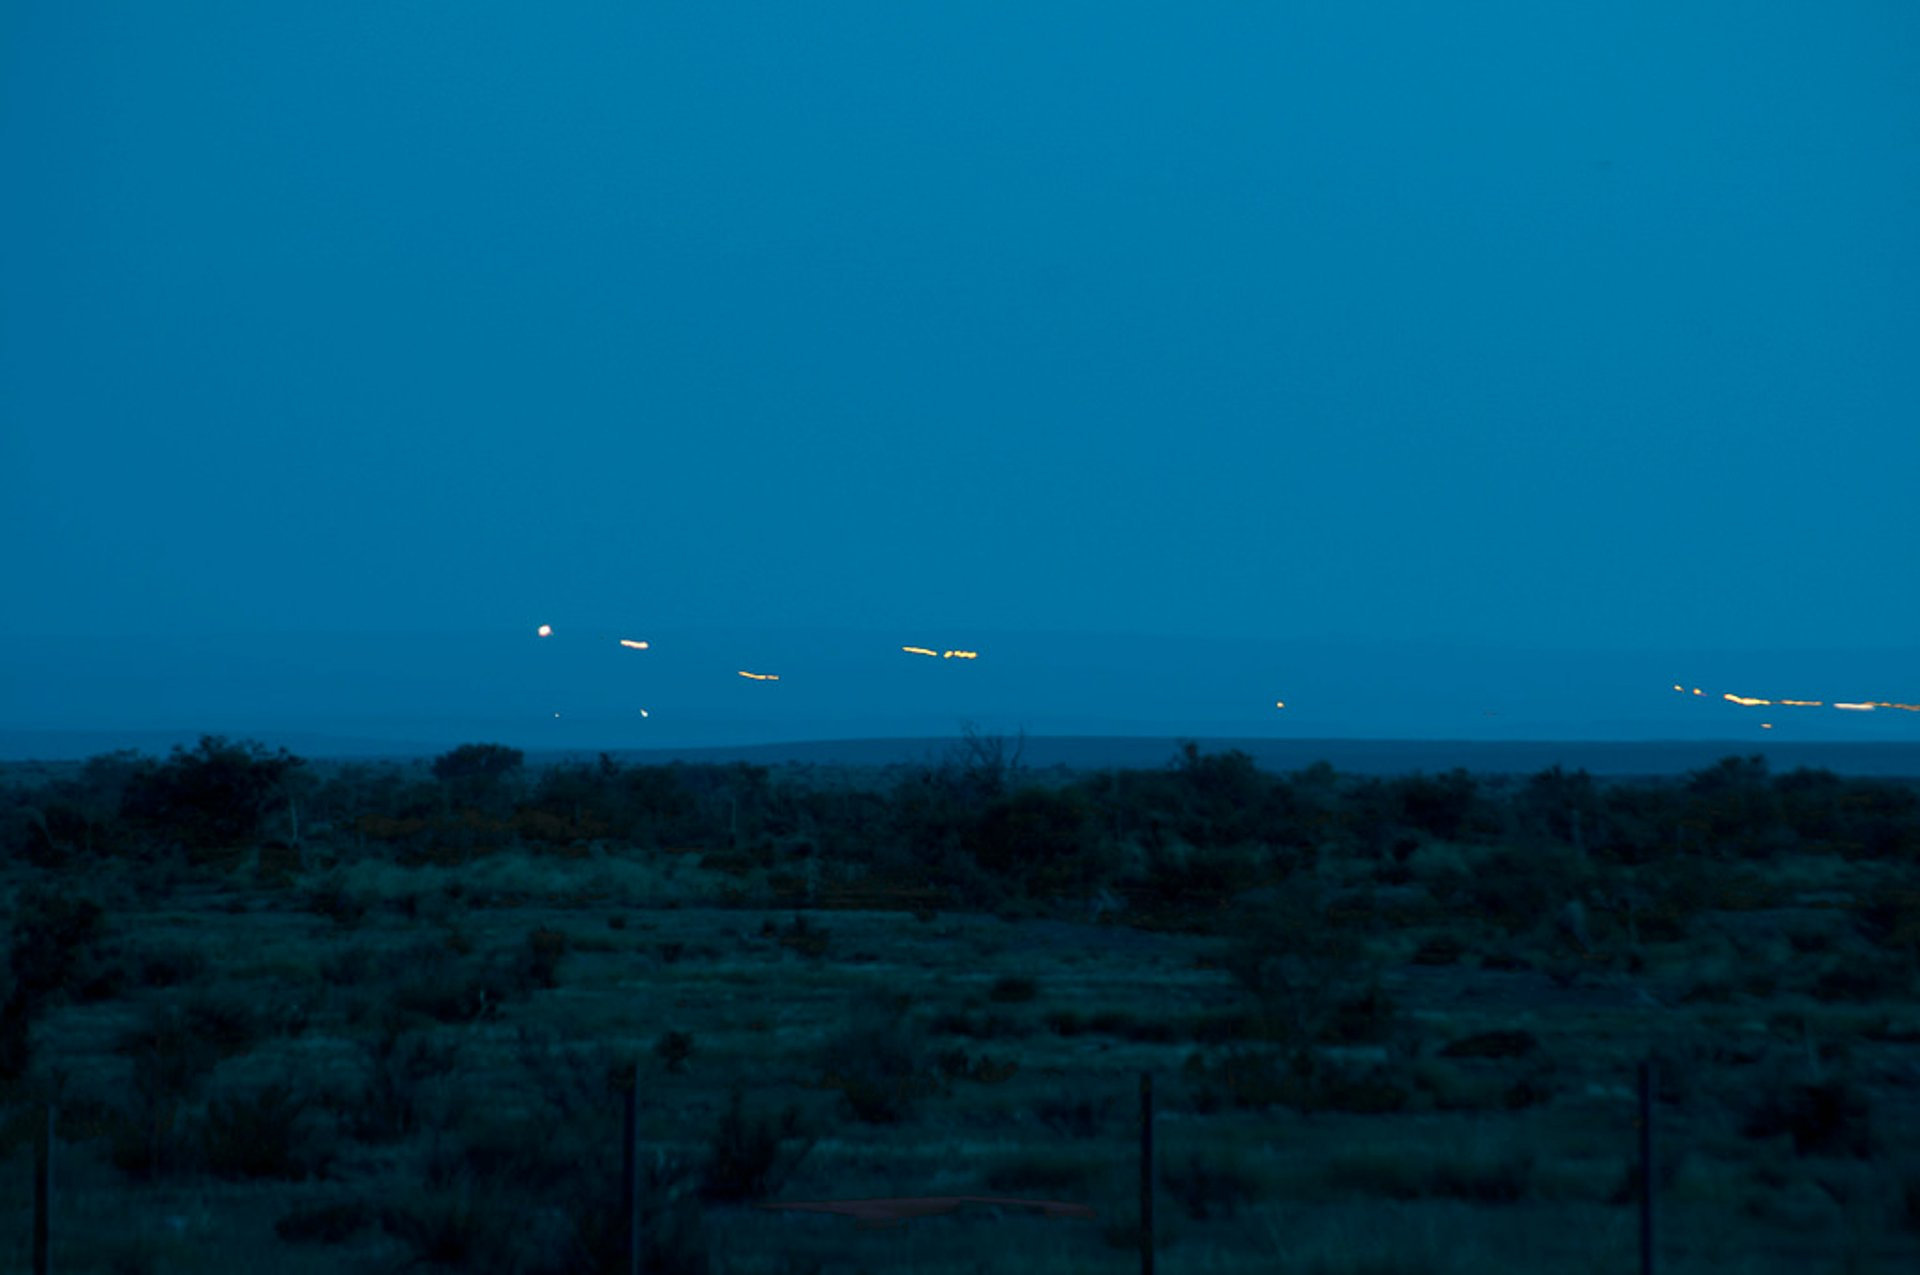 Marfa Lights in Texas 2019 - Best Time